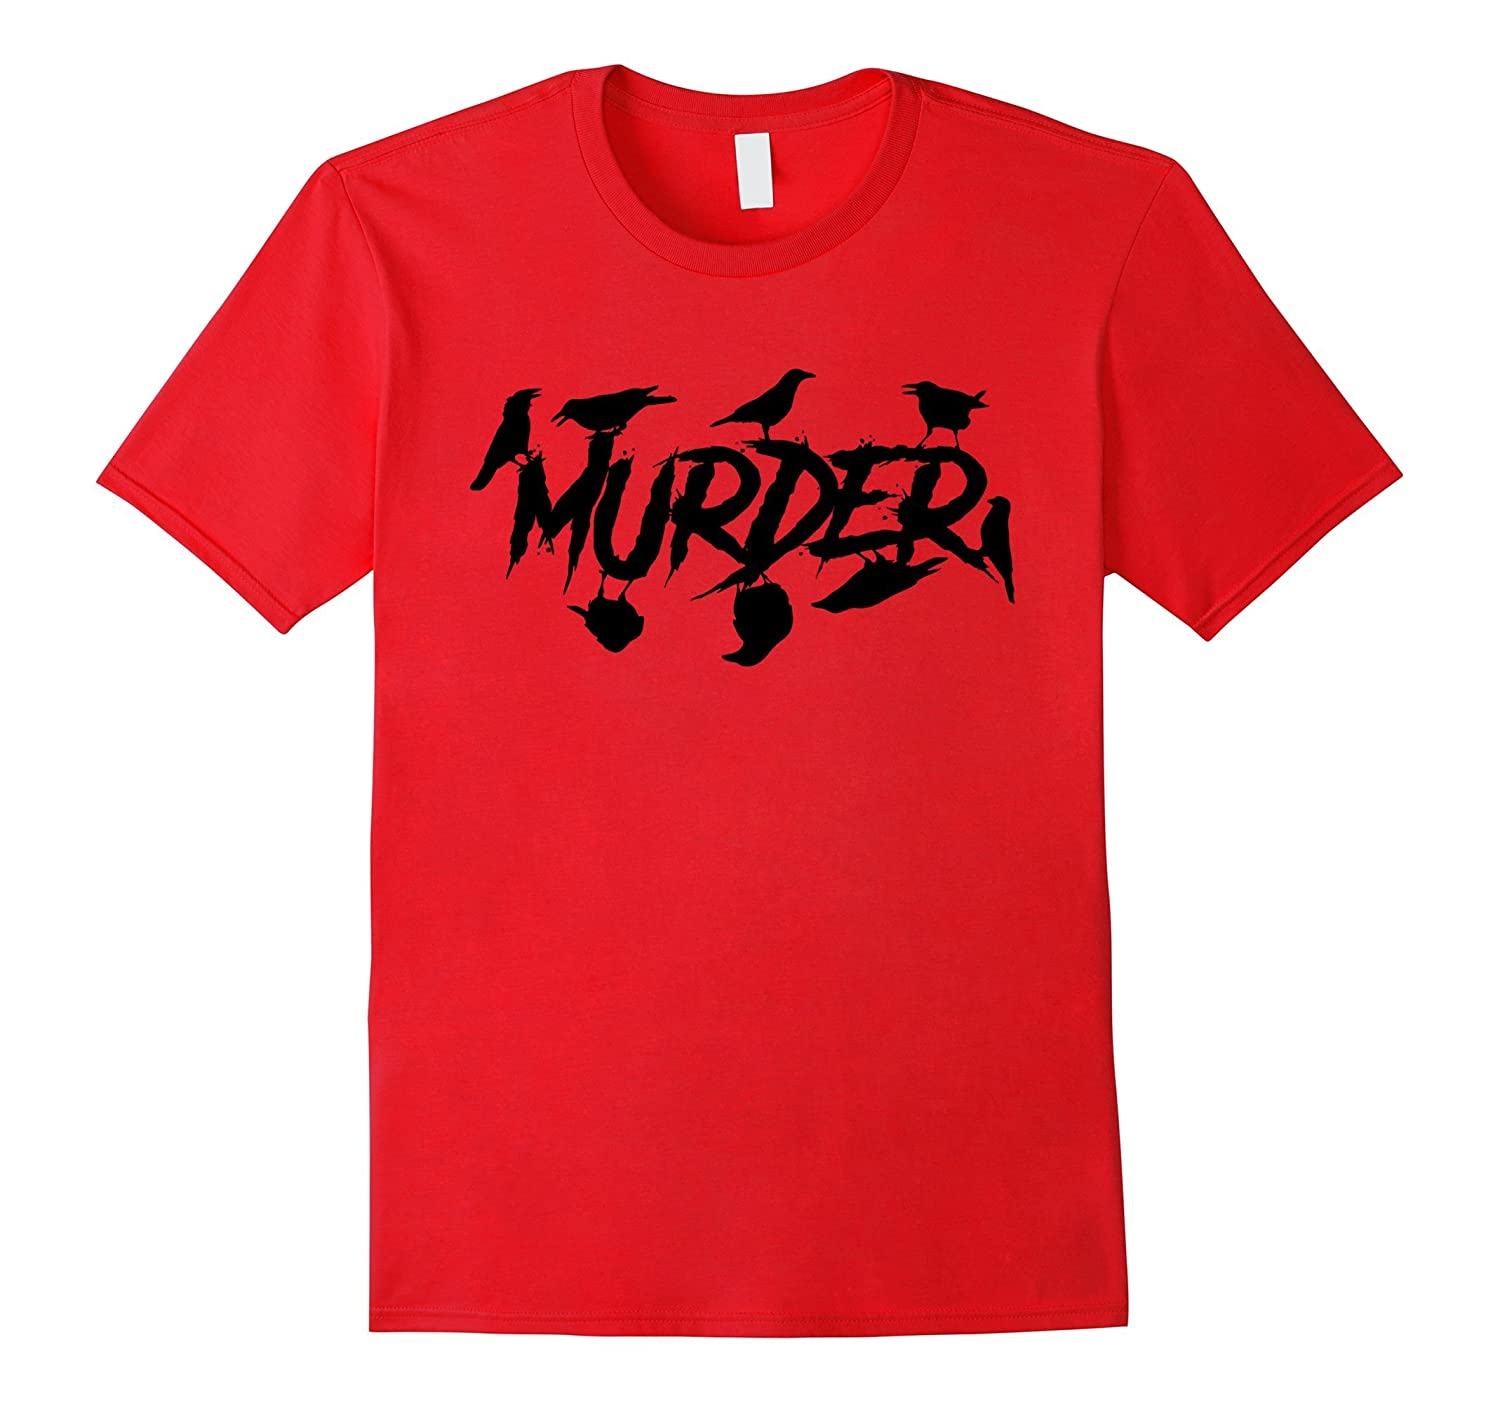 Murder Crows Graphic Tee Shirt Horror Style Text-TJ